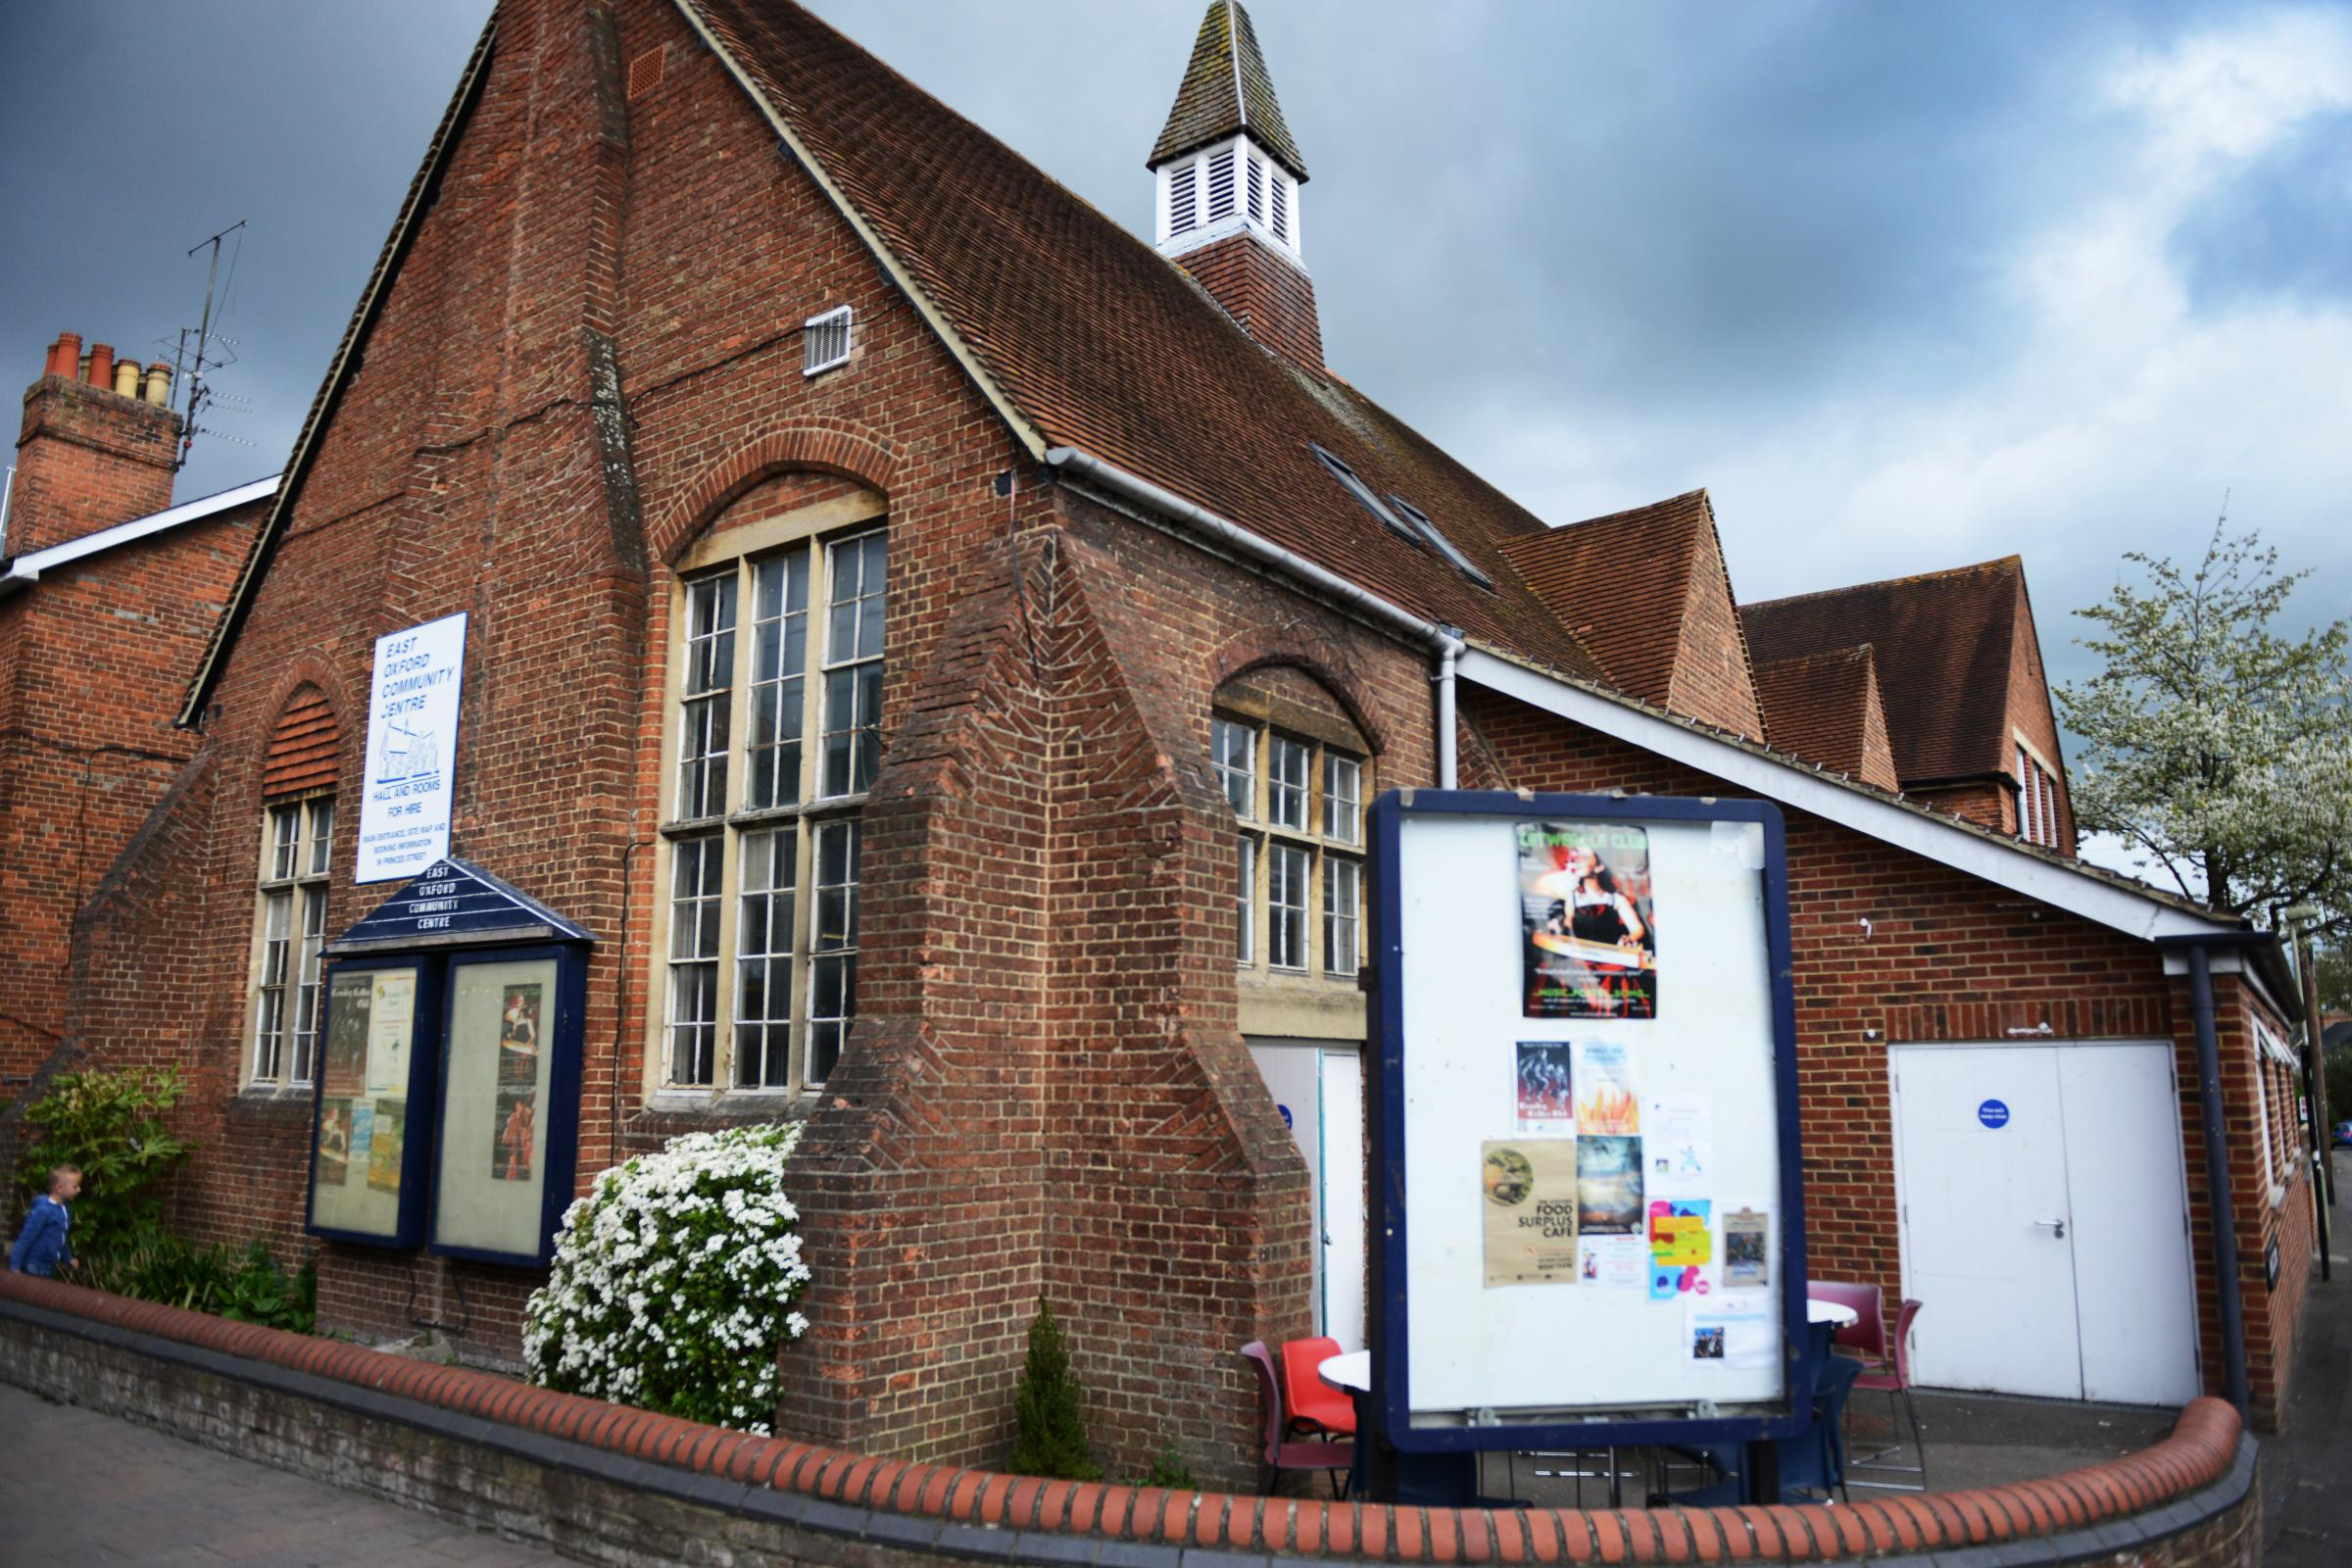 East Oxford Community Centre. Picture: Richard Cave